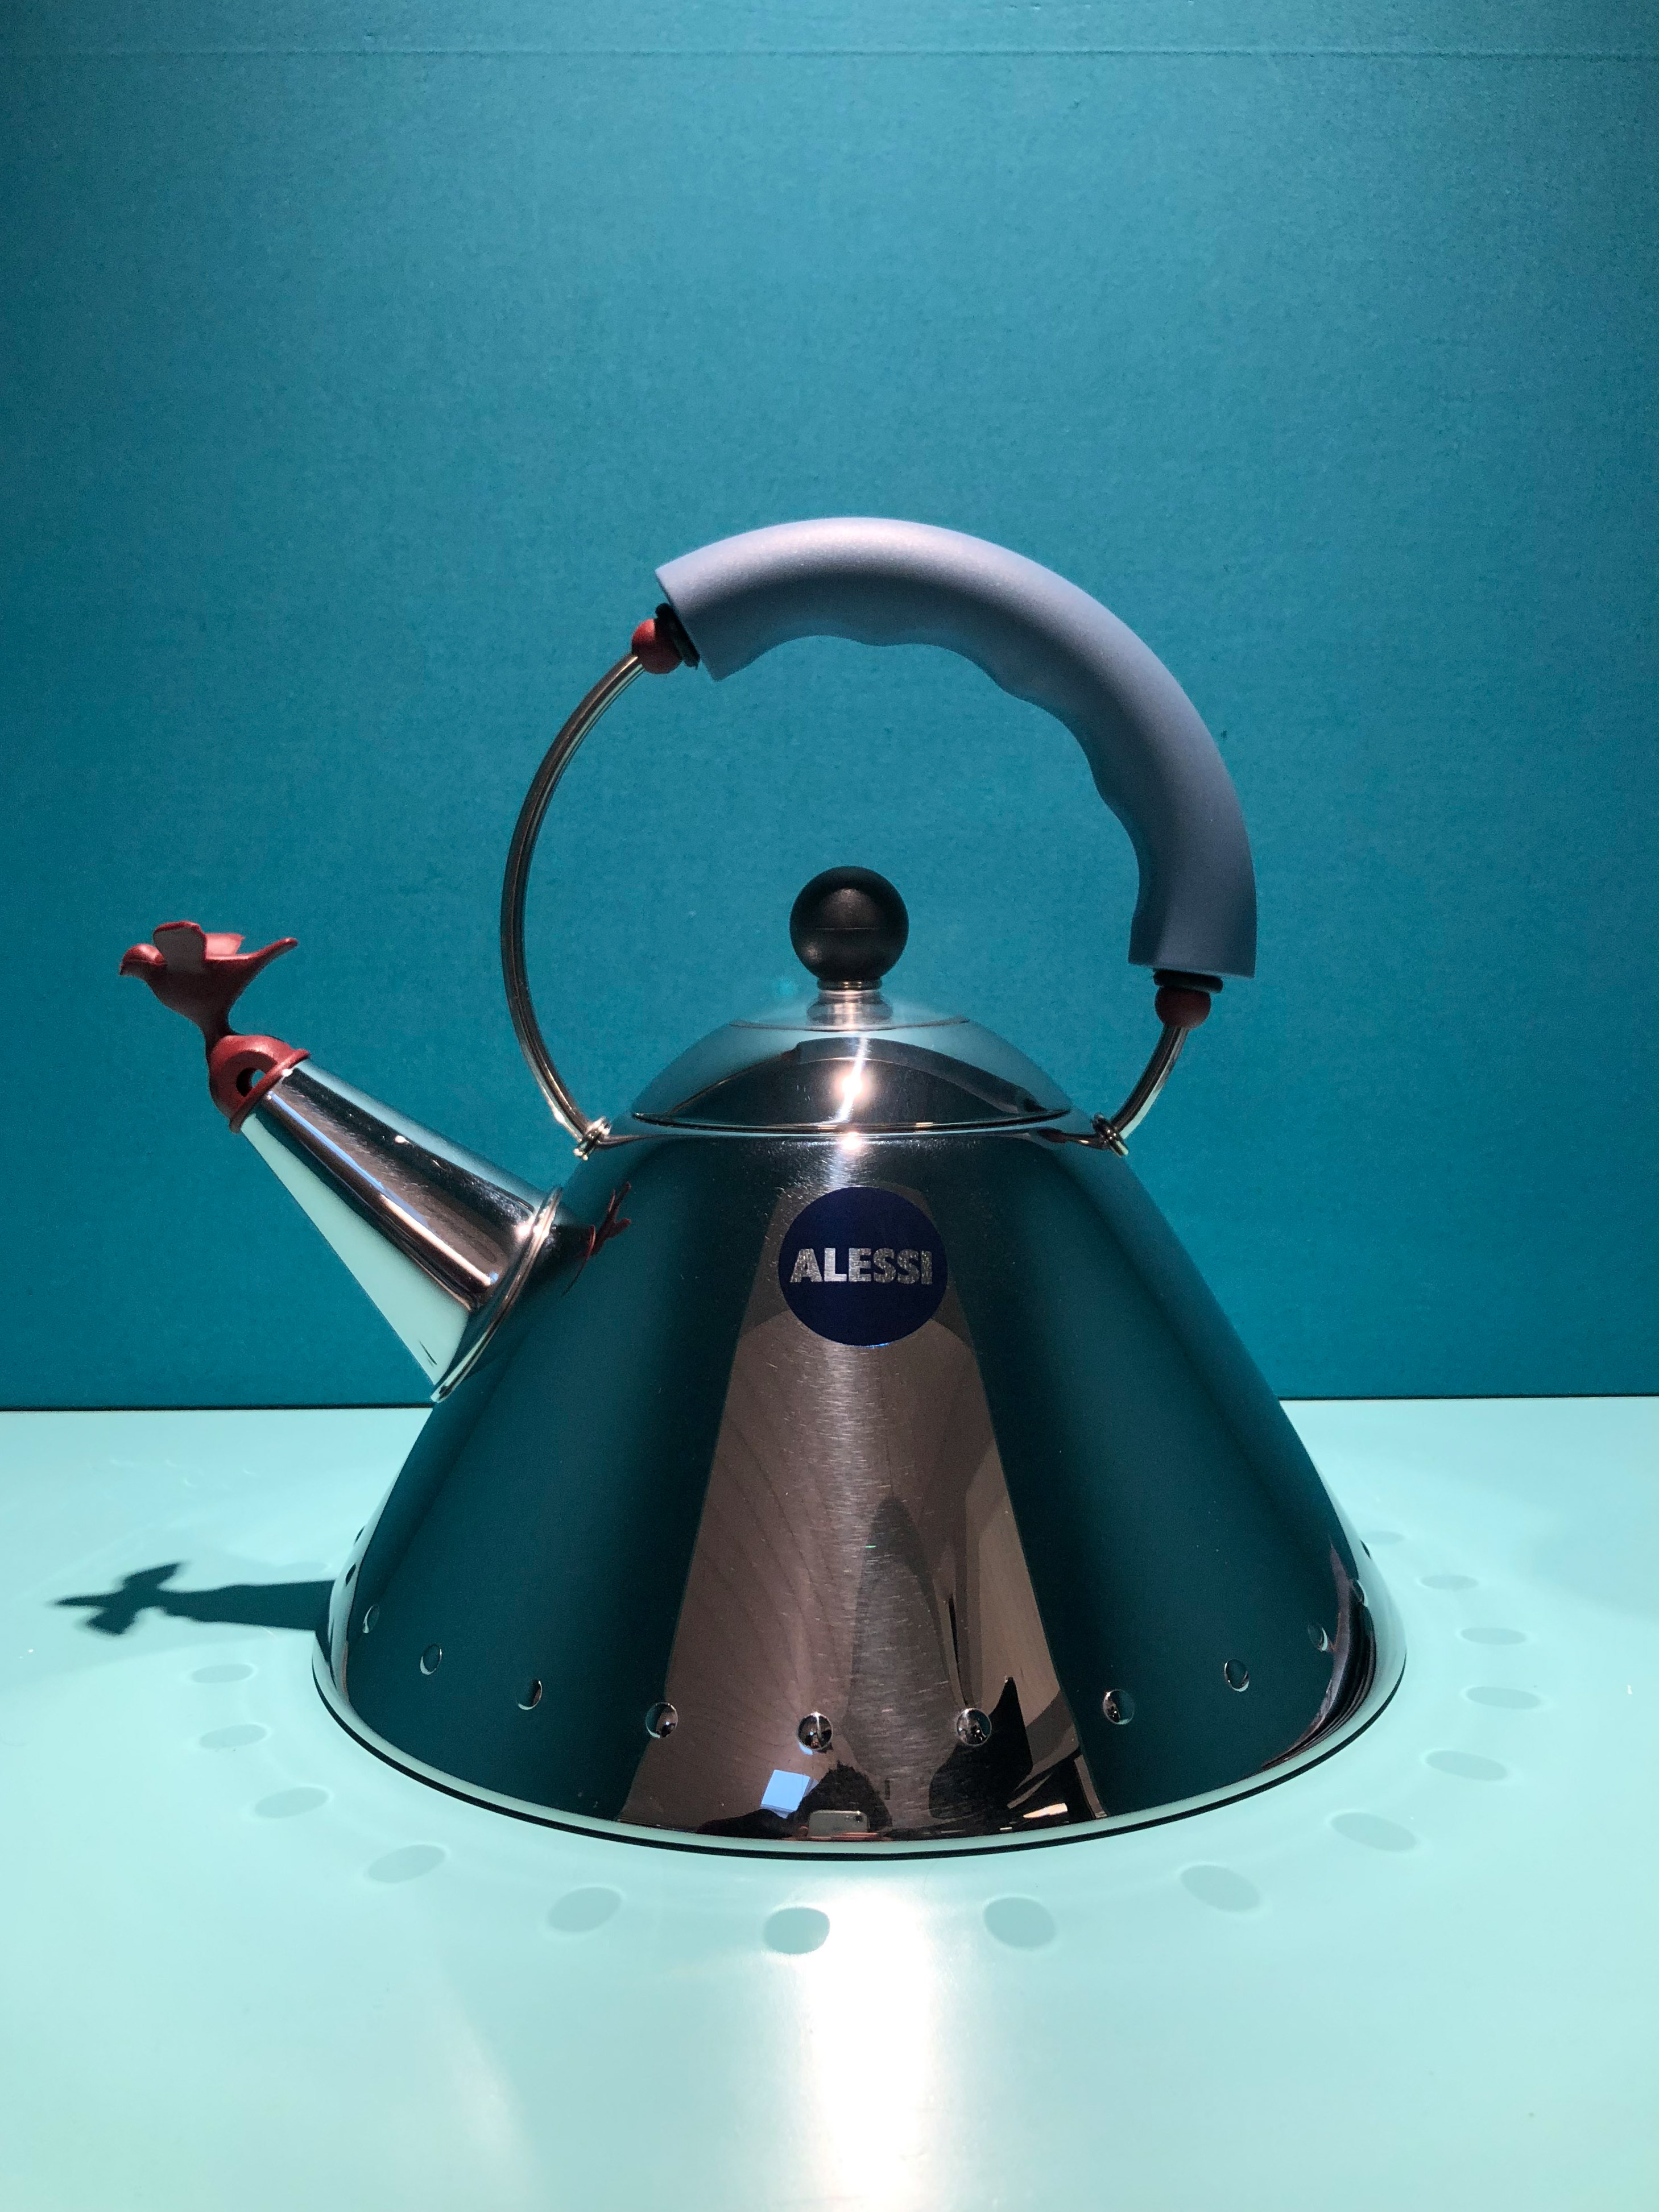 Bollitore 9093, Alessi - Deesup